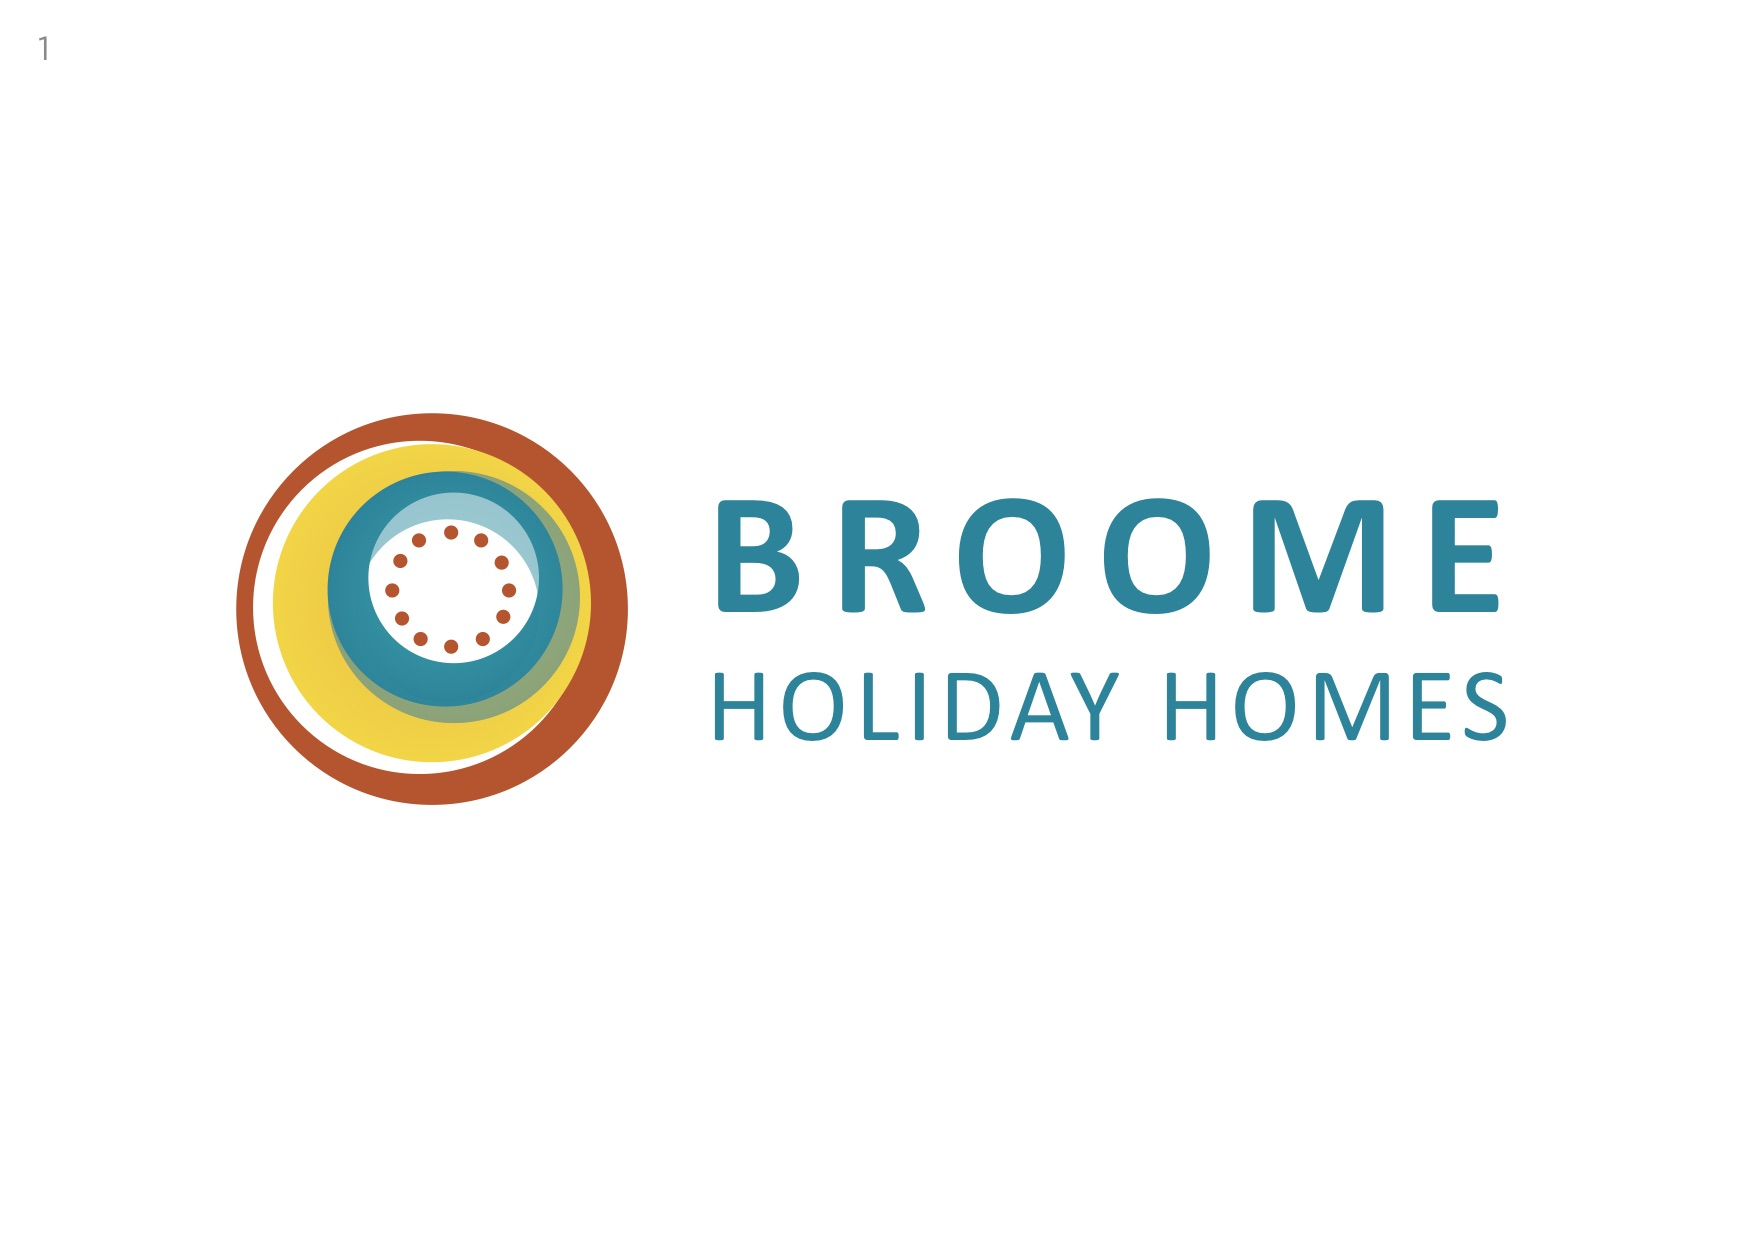 Broome Holiday Homes